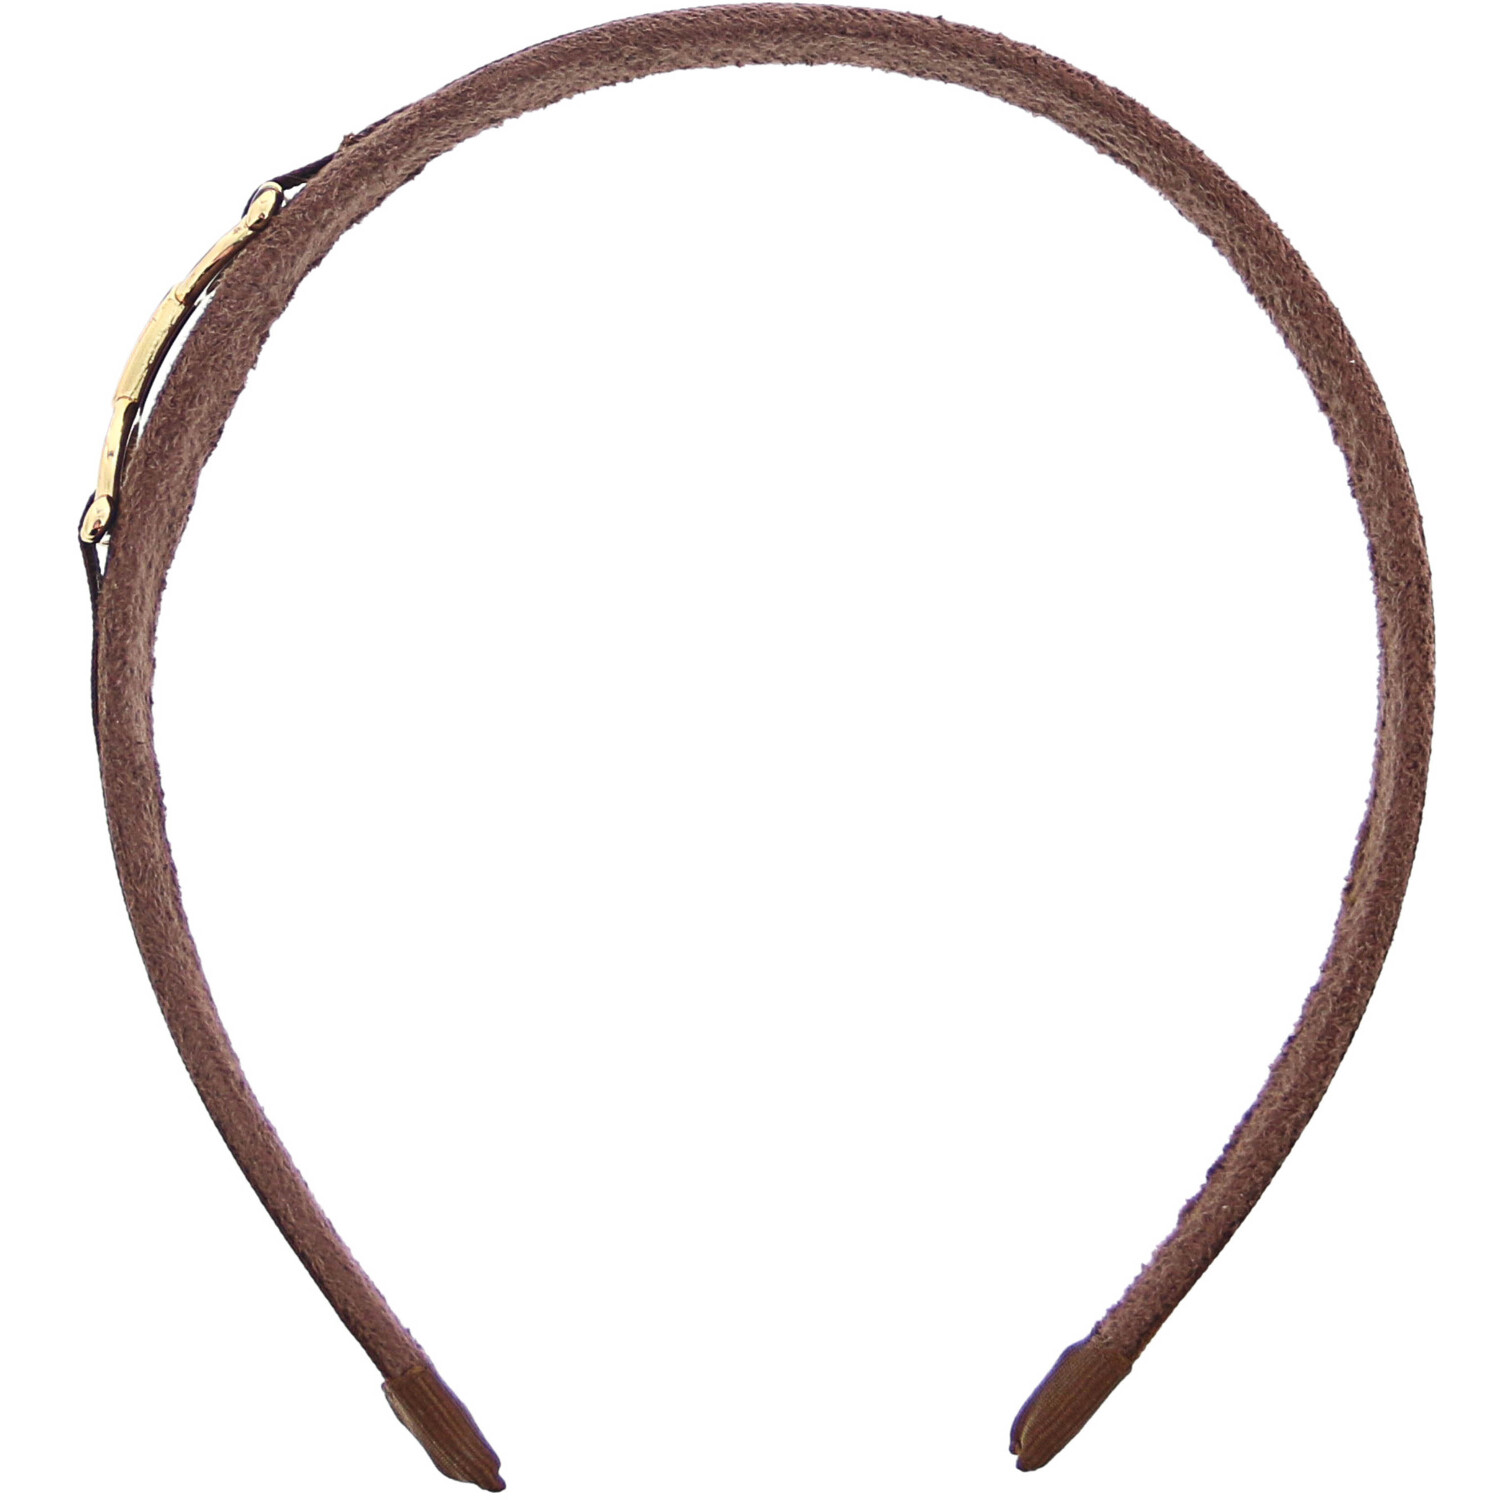 Janie And Jack Girl's Bridle Headband Hair Accessory - One Size - Brown